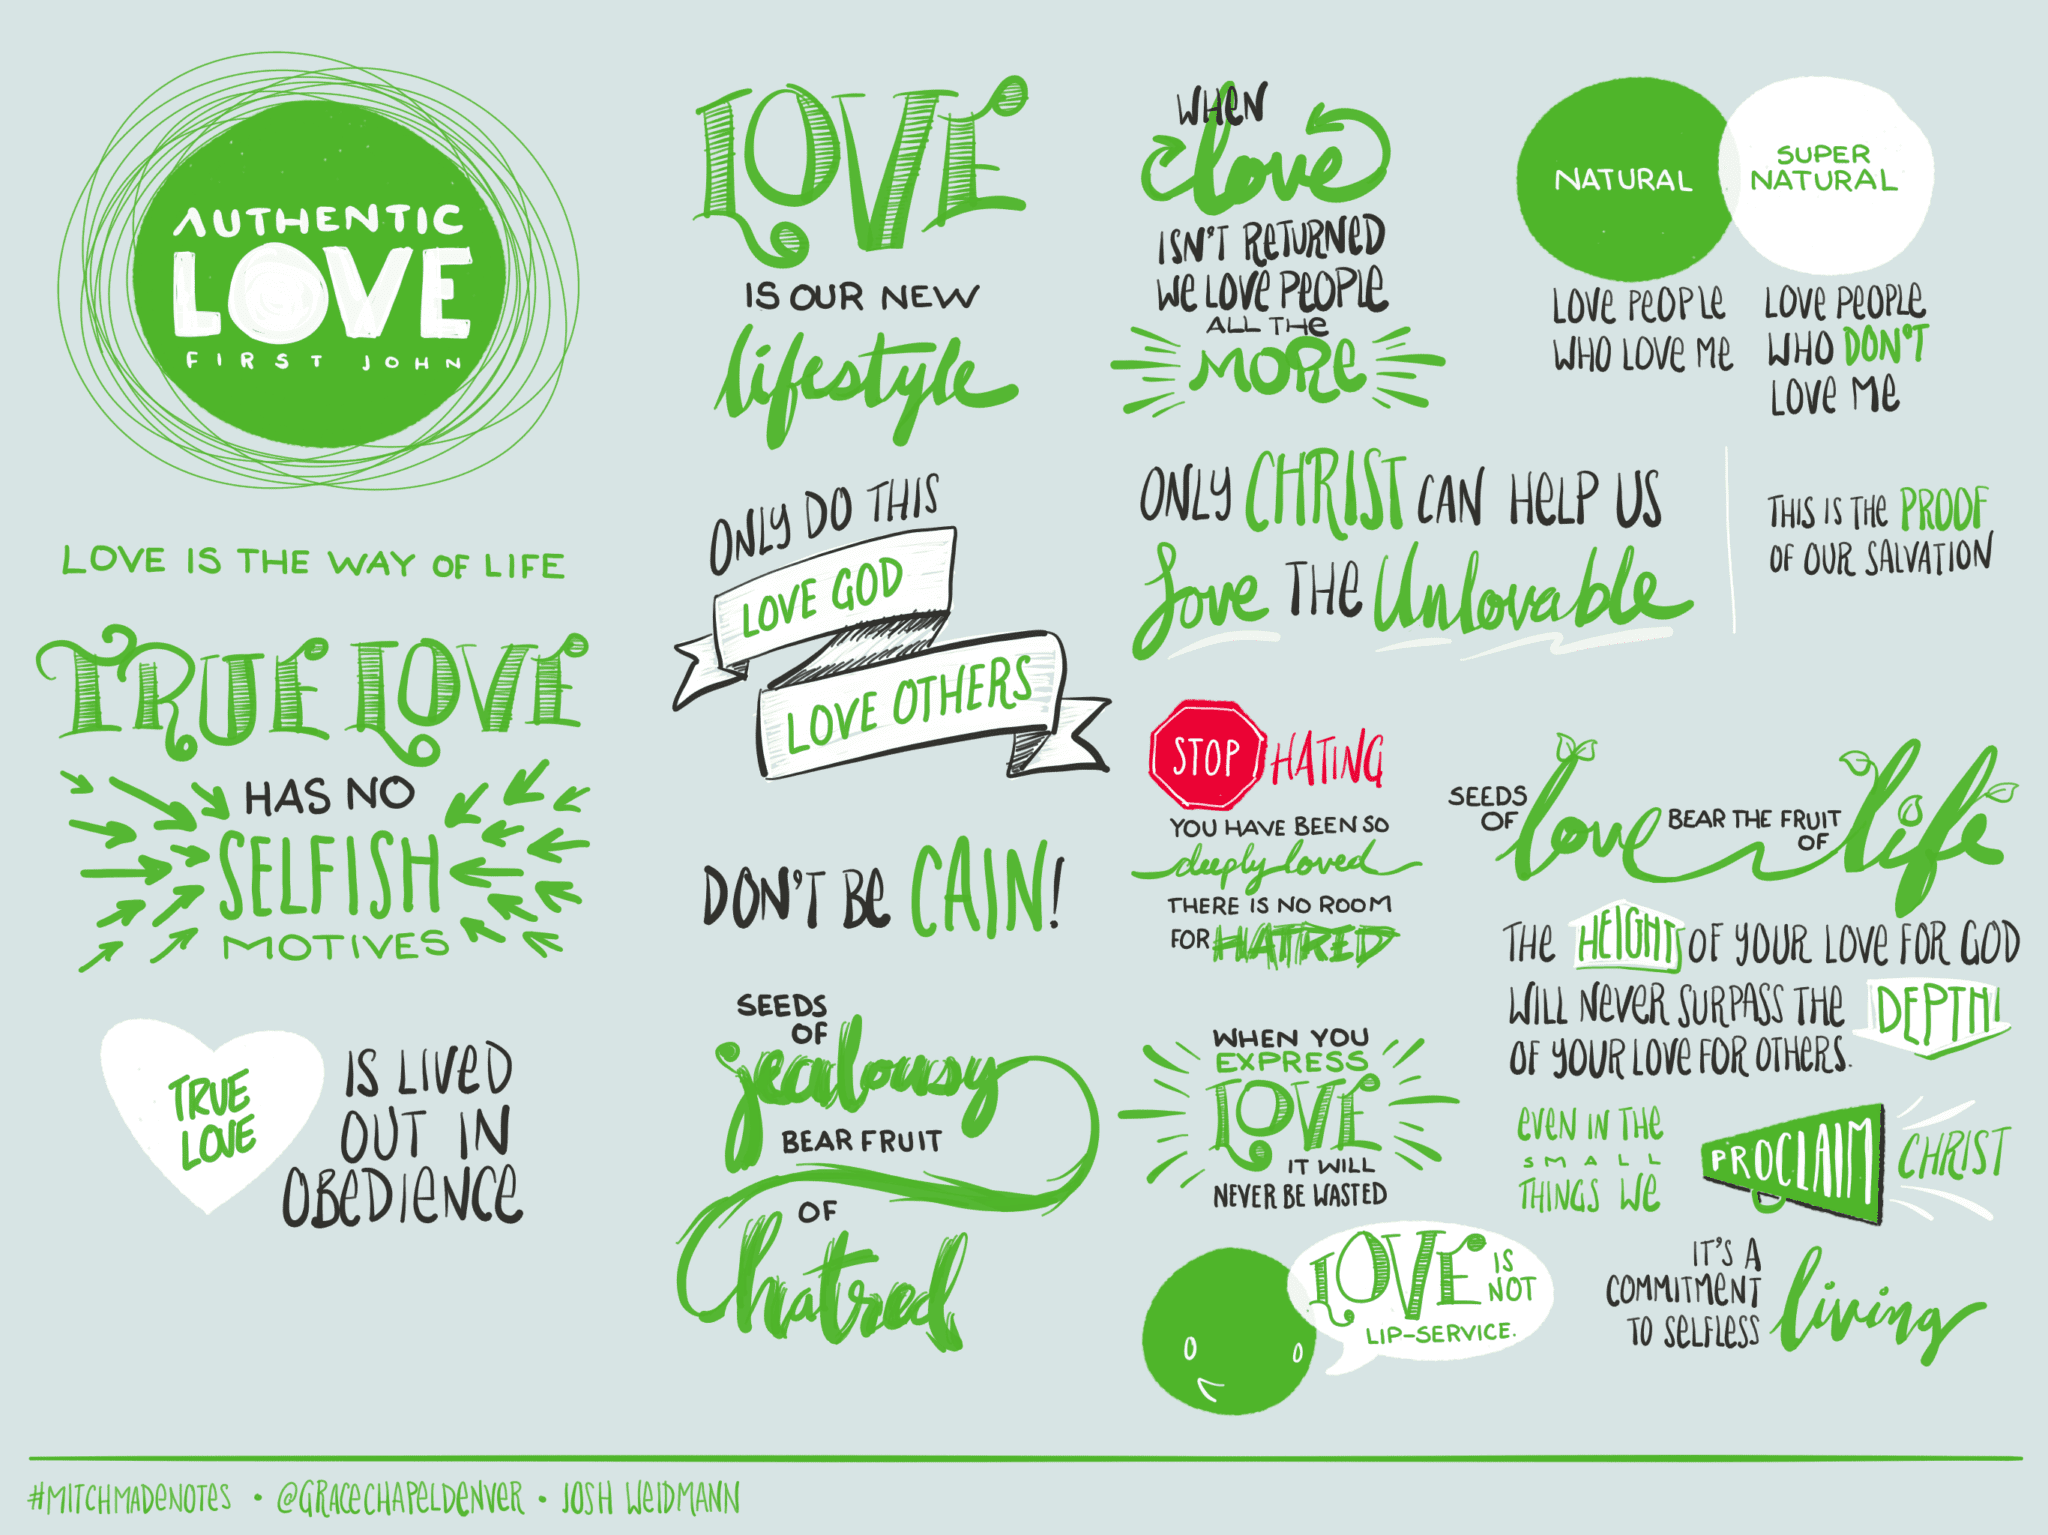 If you like these notes, right-click to download and save them!